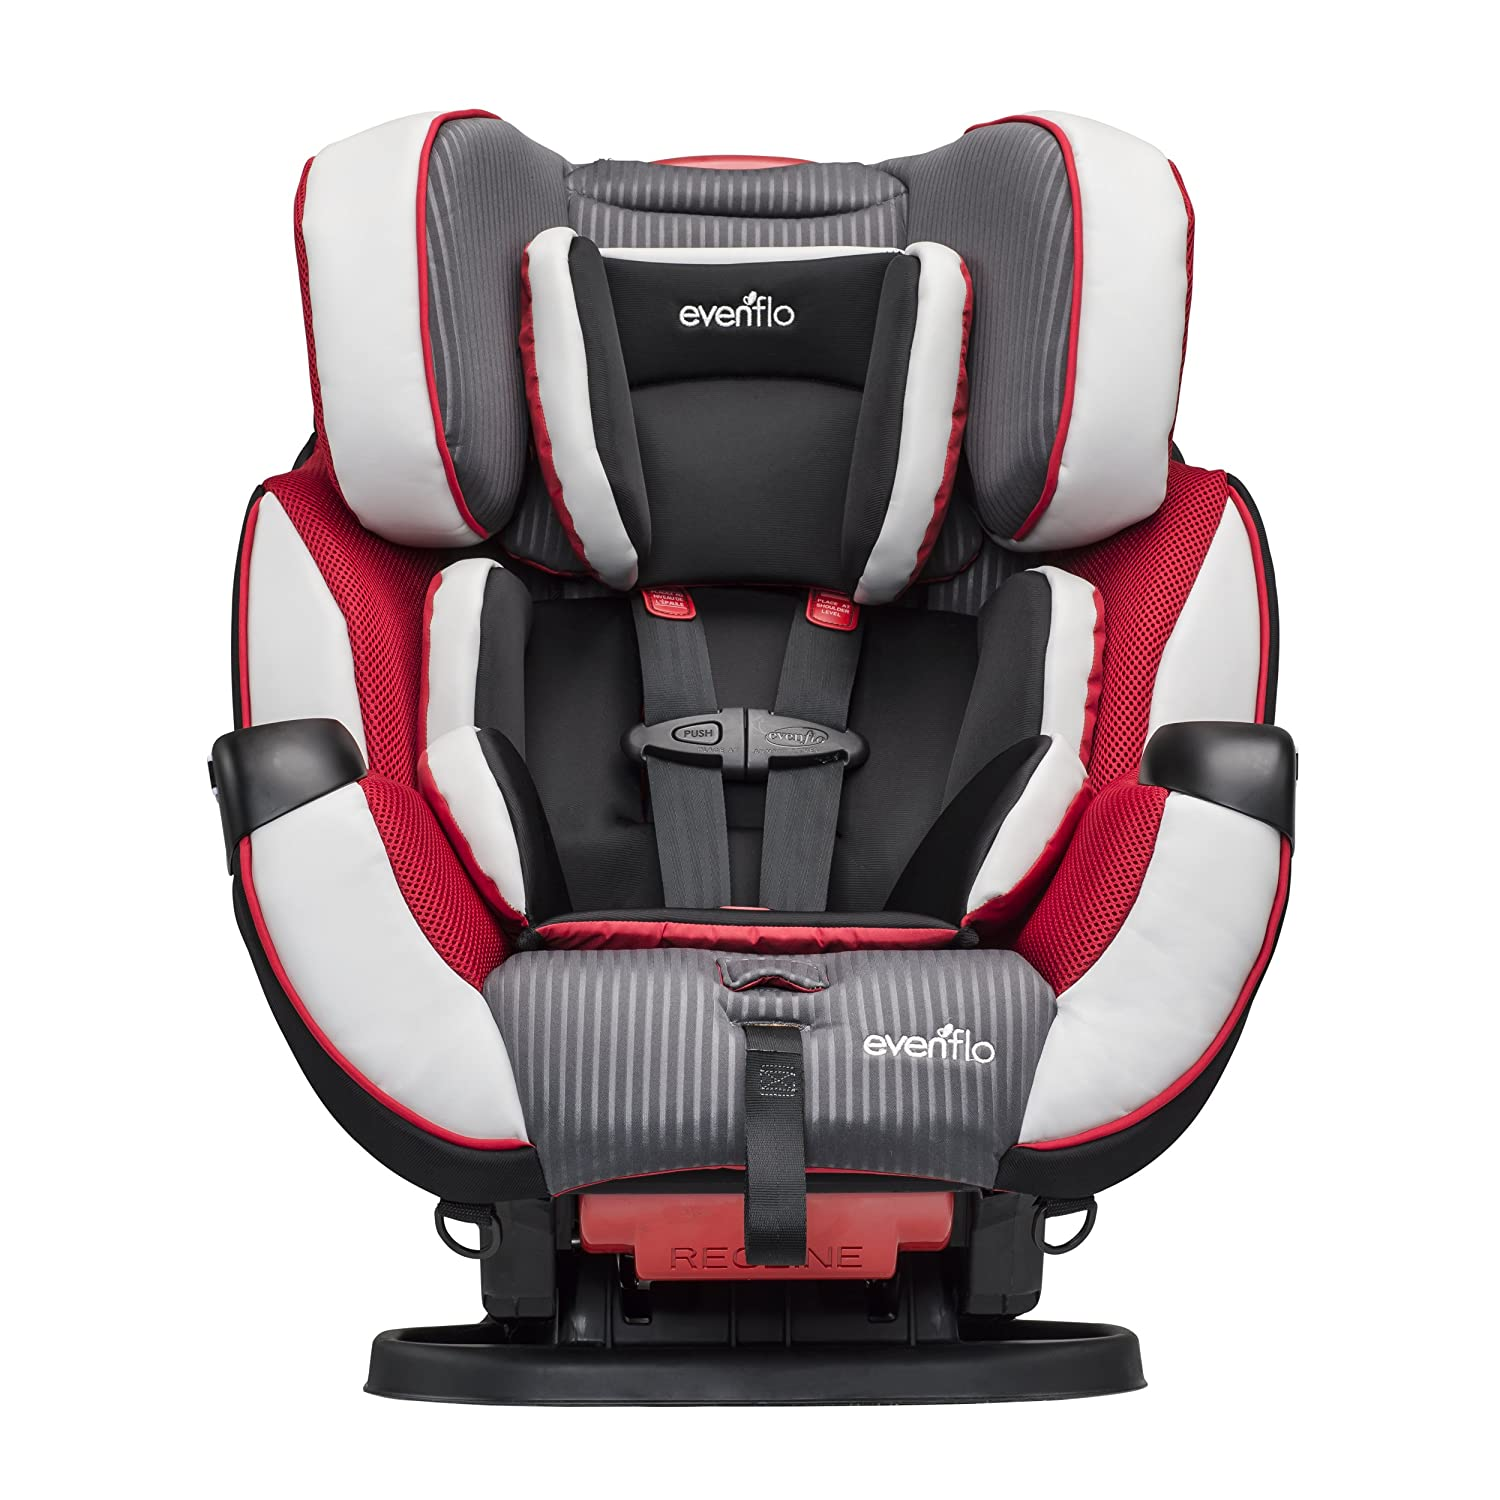 Amazon.com : Evenflo Symphony Elite All-In-One Convertible Car Seat ...